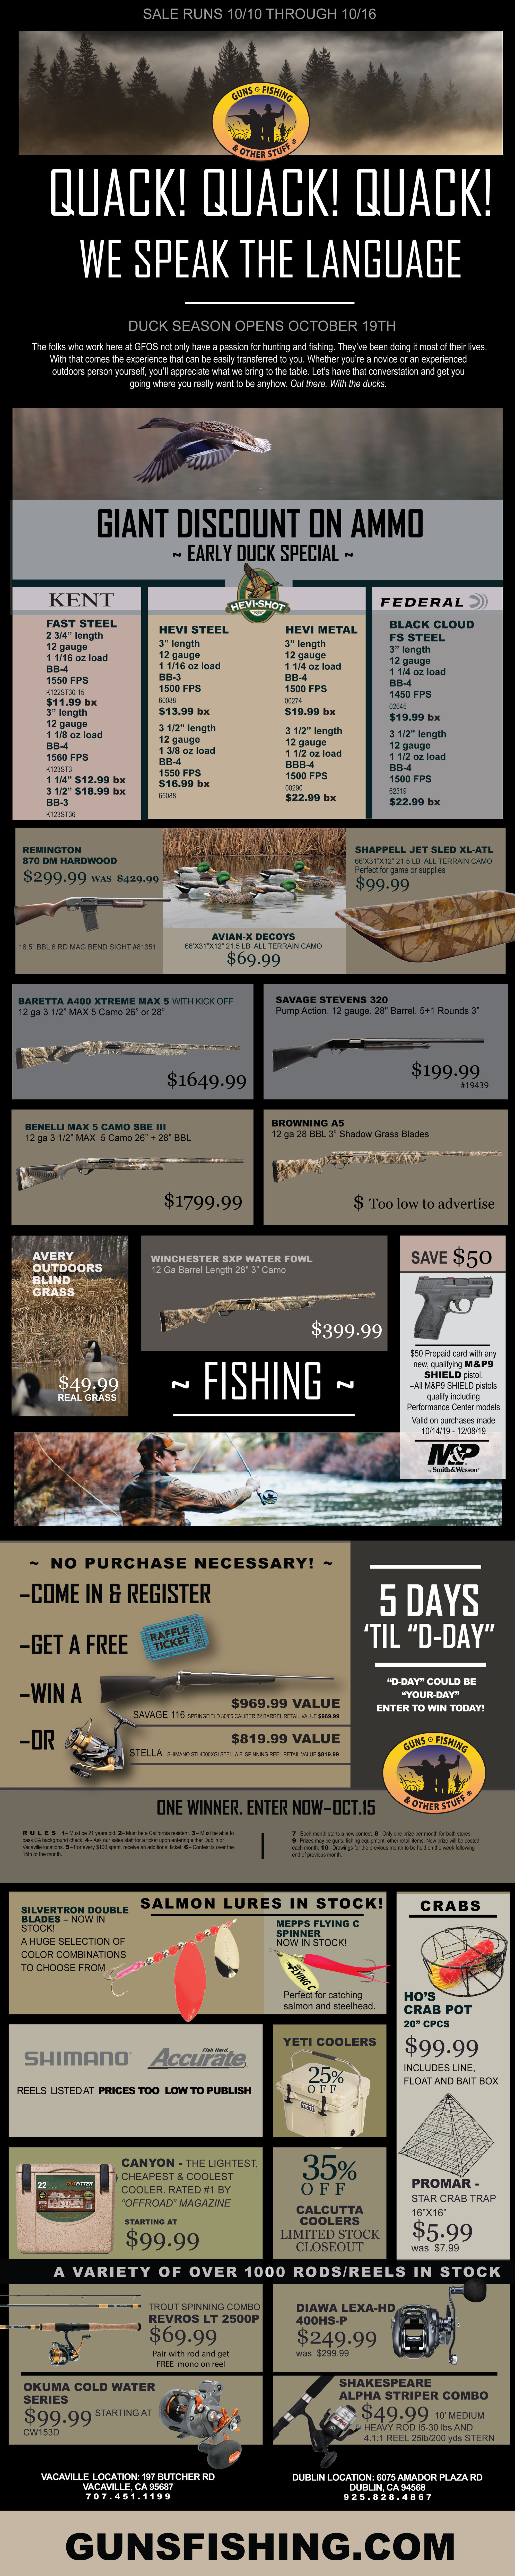 guns fishing and other stuff duck hunting sale